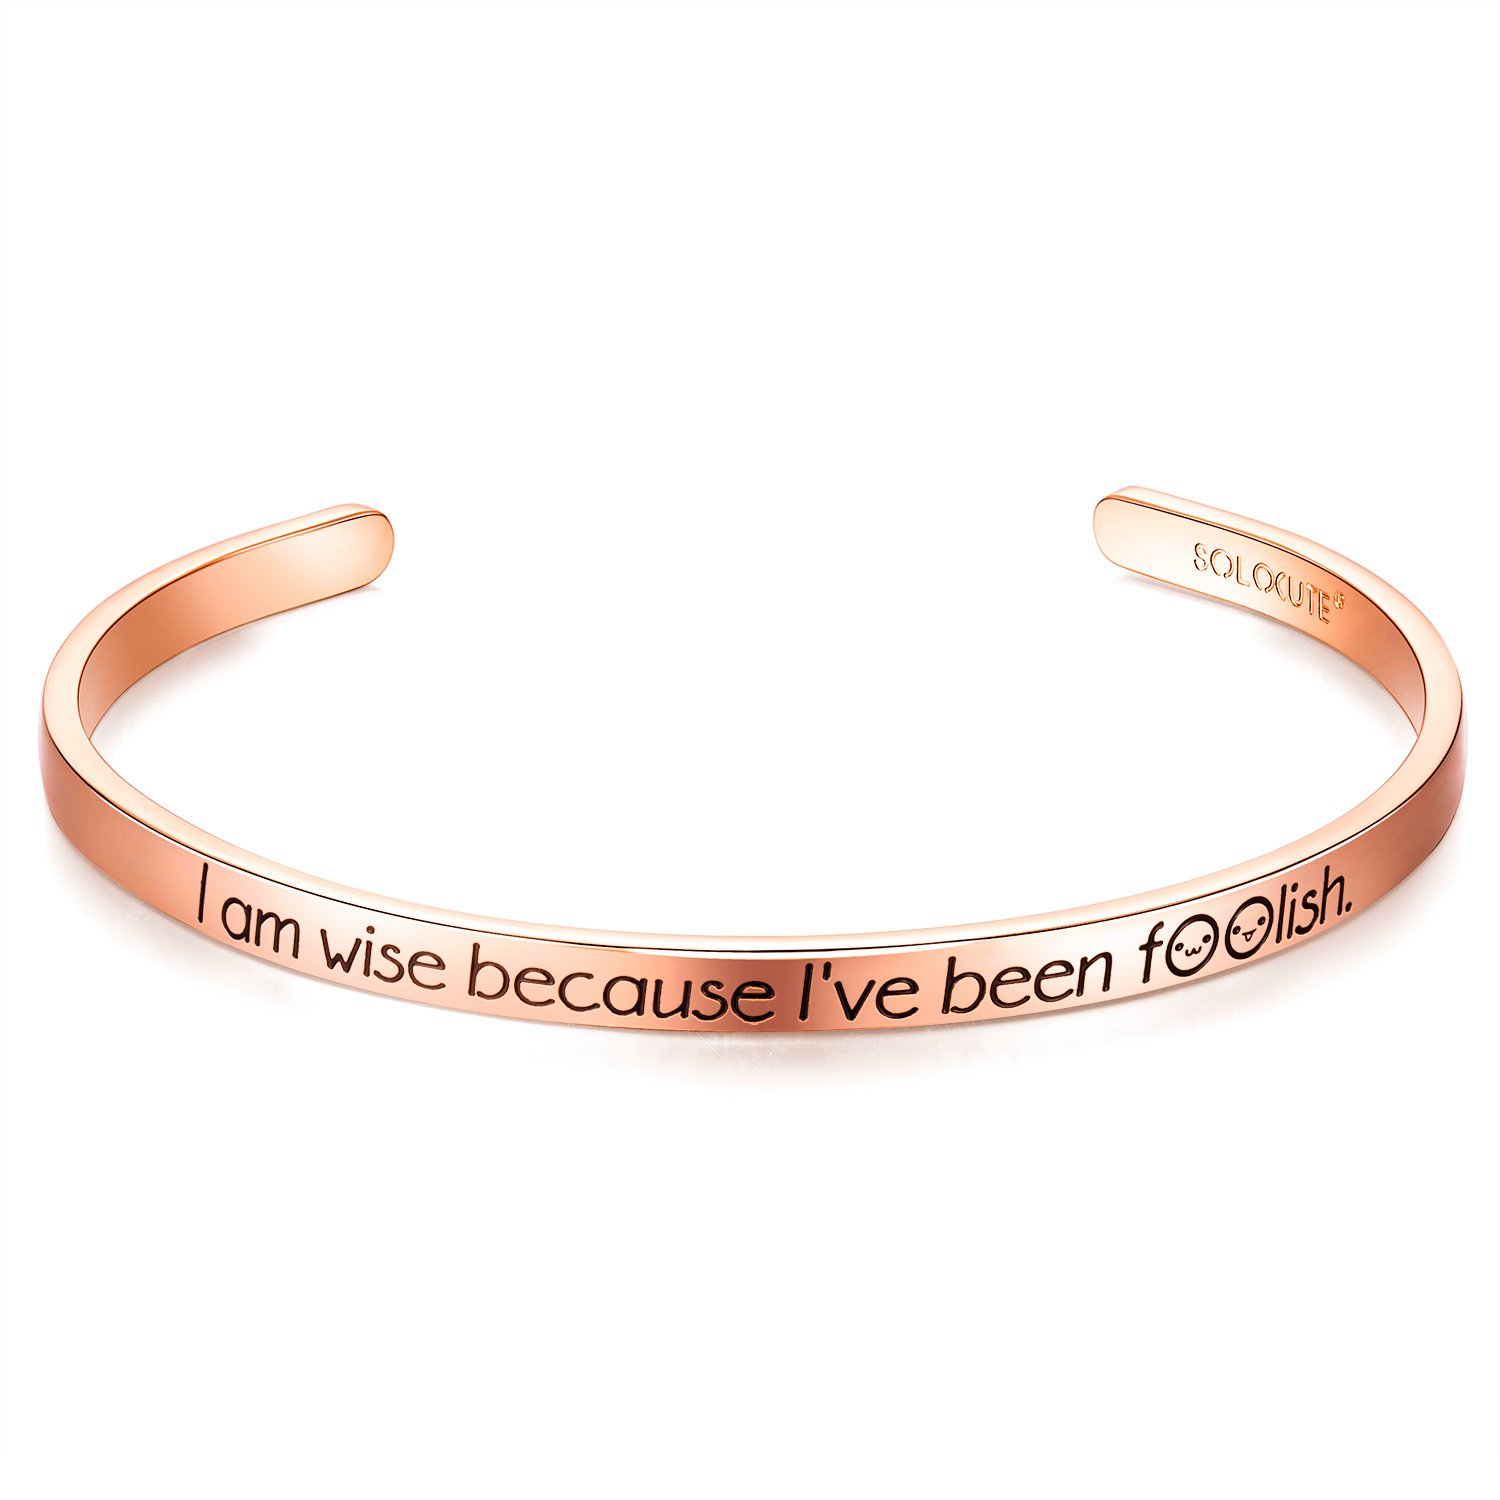 Birthday and Graduation Ceremony Thanksgiving Day Solocute Women Bangle Bracelet I am Wise Because Ive Been Foolish Inspirational Cuff Jewelry Gift for Christmas Day